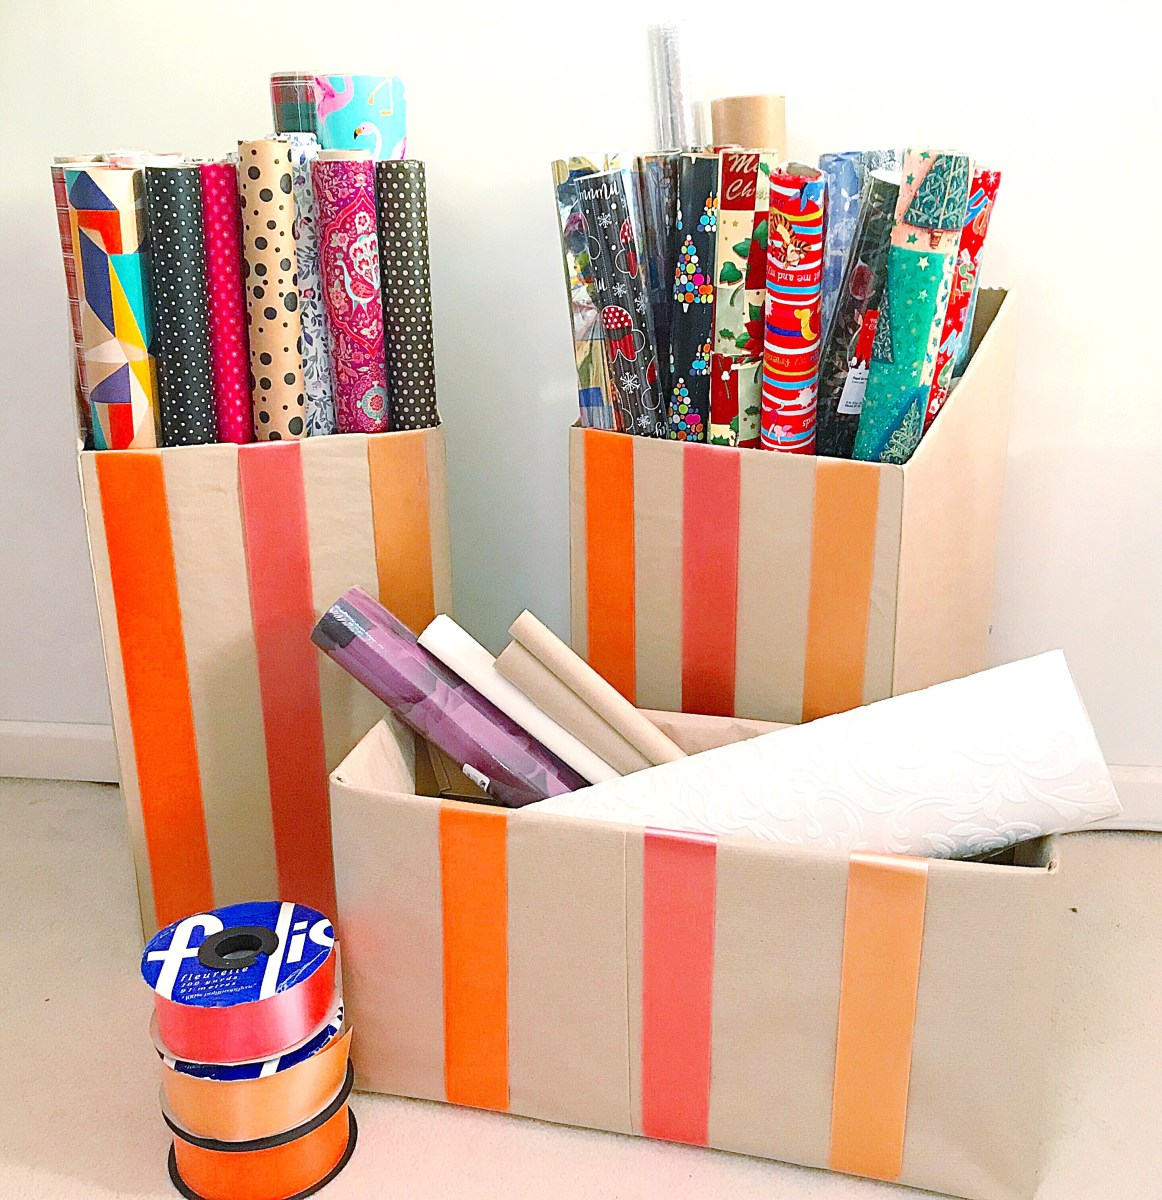 Up-cycled gift wrapping paper storage boxes 2